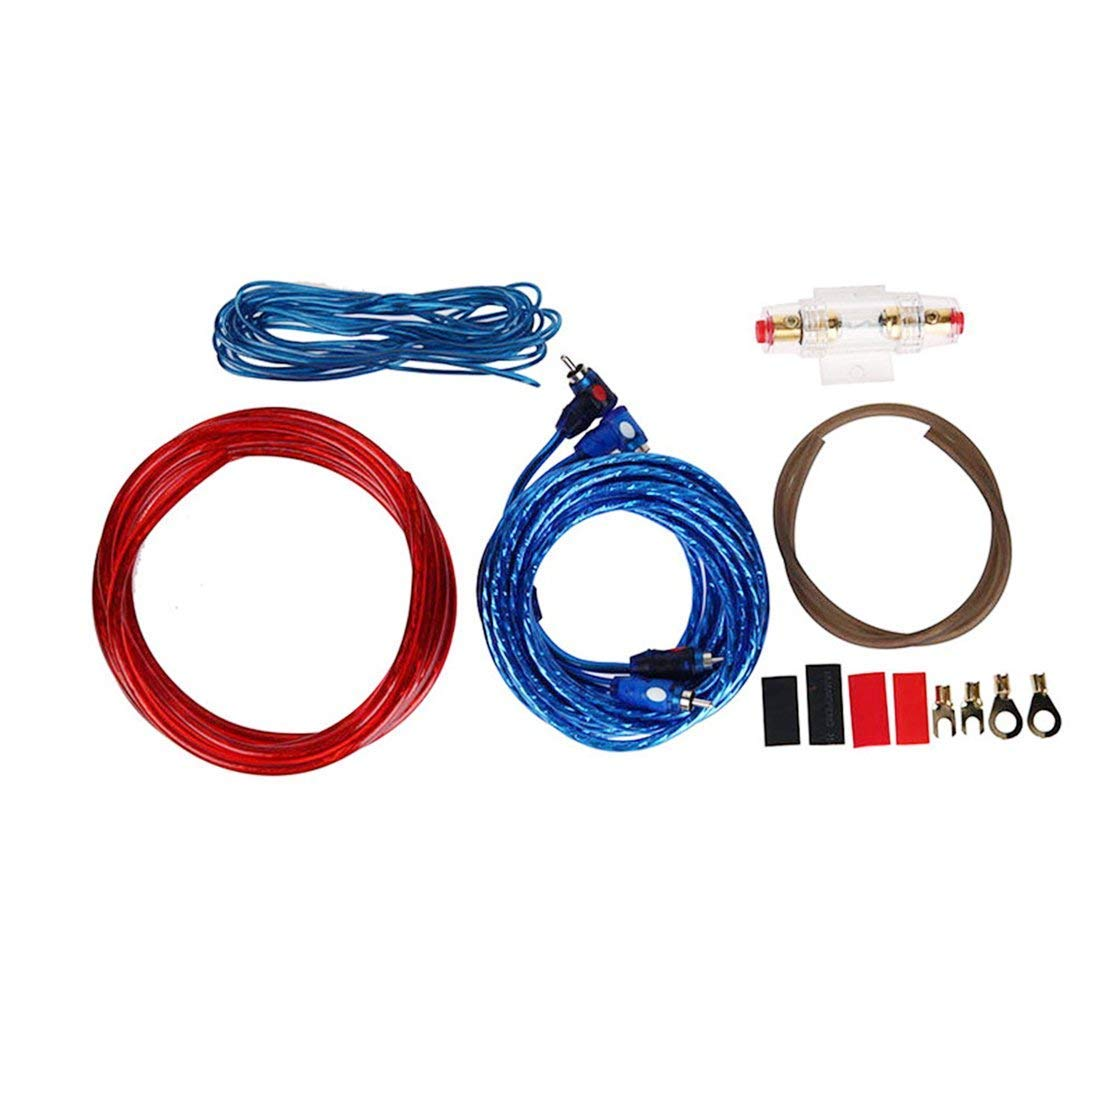 Cheap Car Subwoofer Wiring Kit Find Deals Amp Get Quotations Bunner 1 Set Audio Connected 8 Gauge Wire Amplifier Speaker